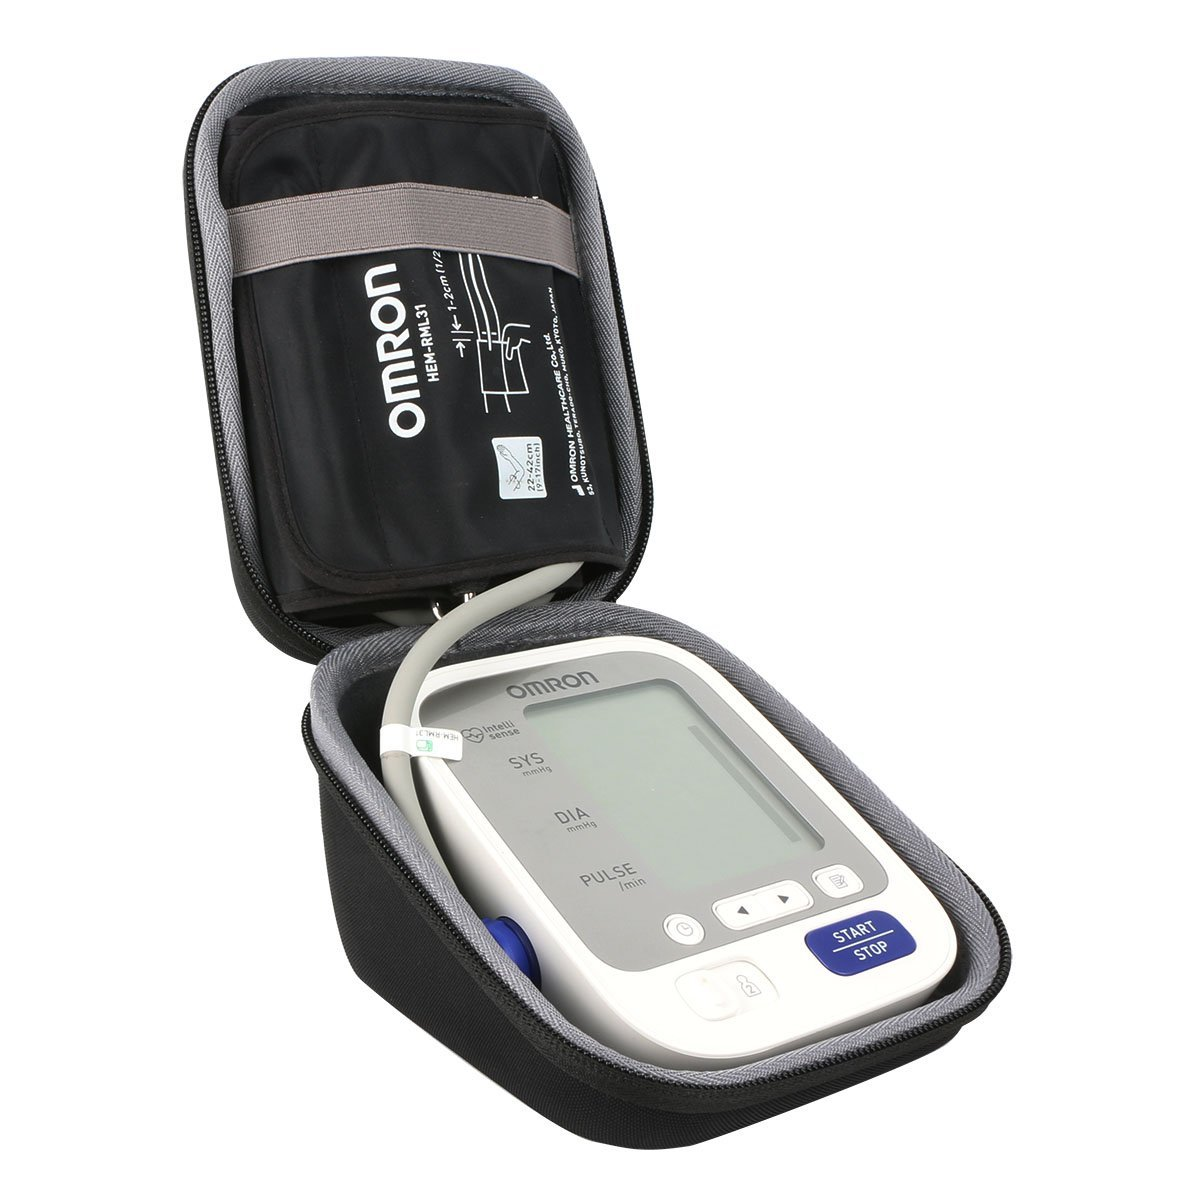 co2crea Hard Travel Case for Omron BP742N 5 Series Upper Arm Blood Pressure Monitor Cuff (Size S) by Co2Crea (Image #6)